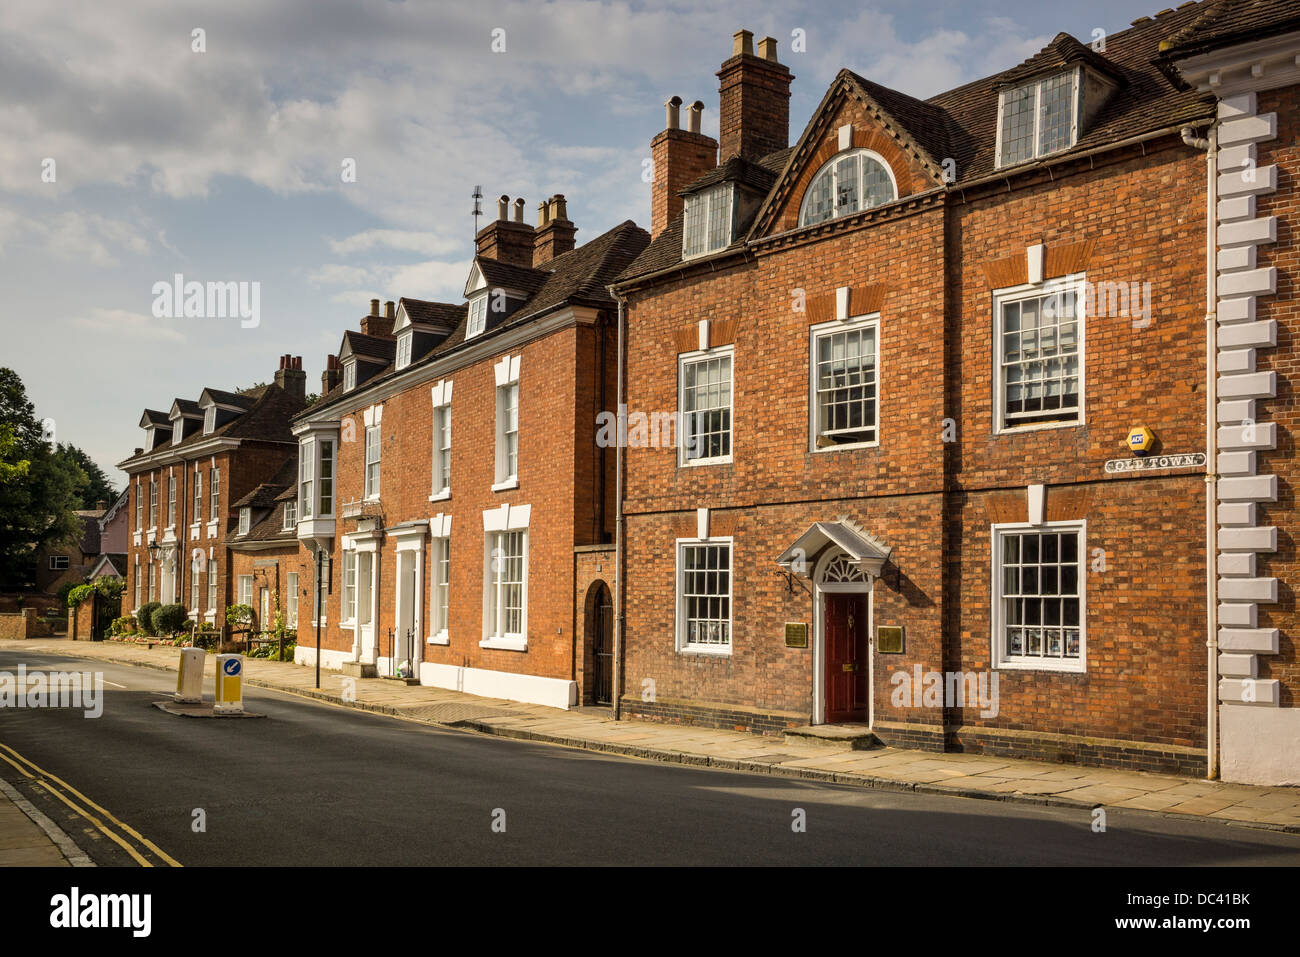 BUILDINGS IN OLD TOWN STRATFORD  UPON AVON,OPPOSIRE HALLS CROFT,SHAKESPEARES SON IN LAW HOUSE, MEDICAL DOCTOR, Stock Photo